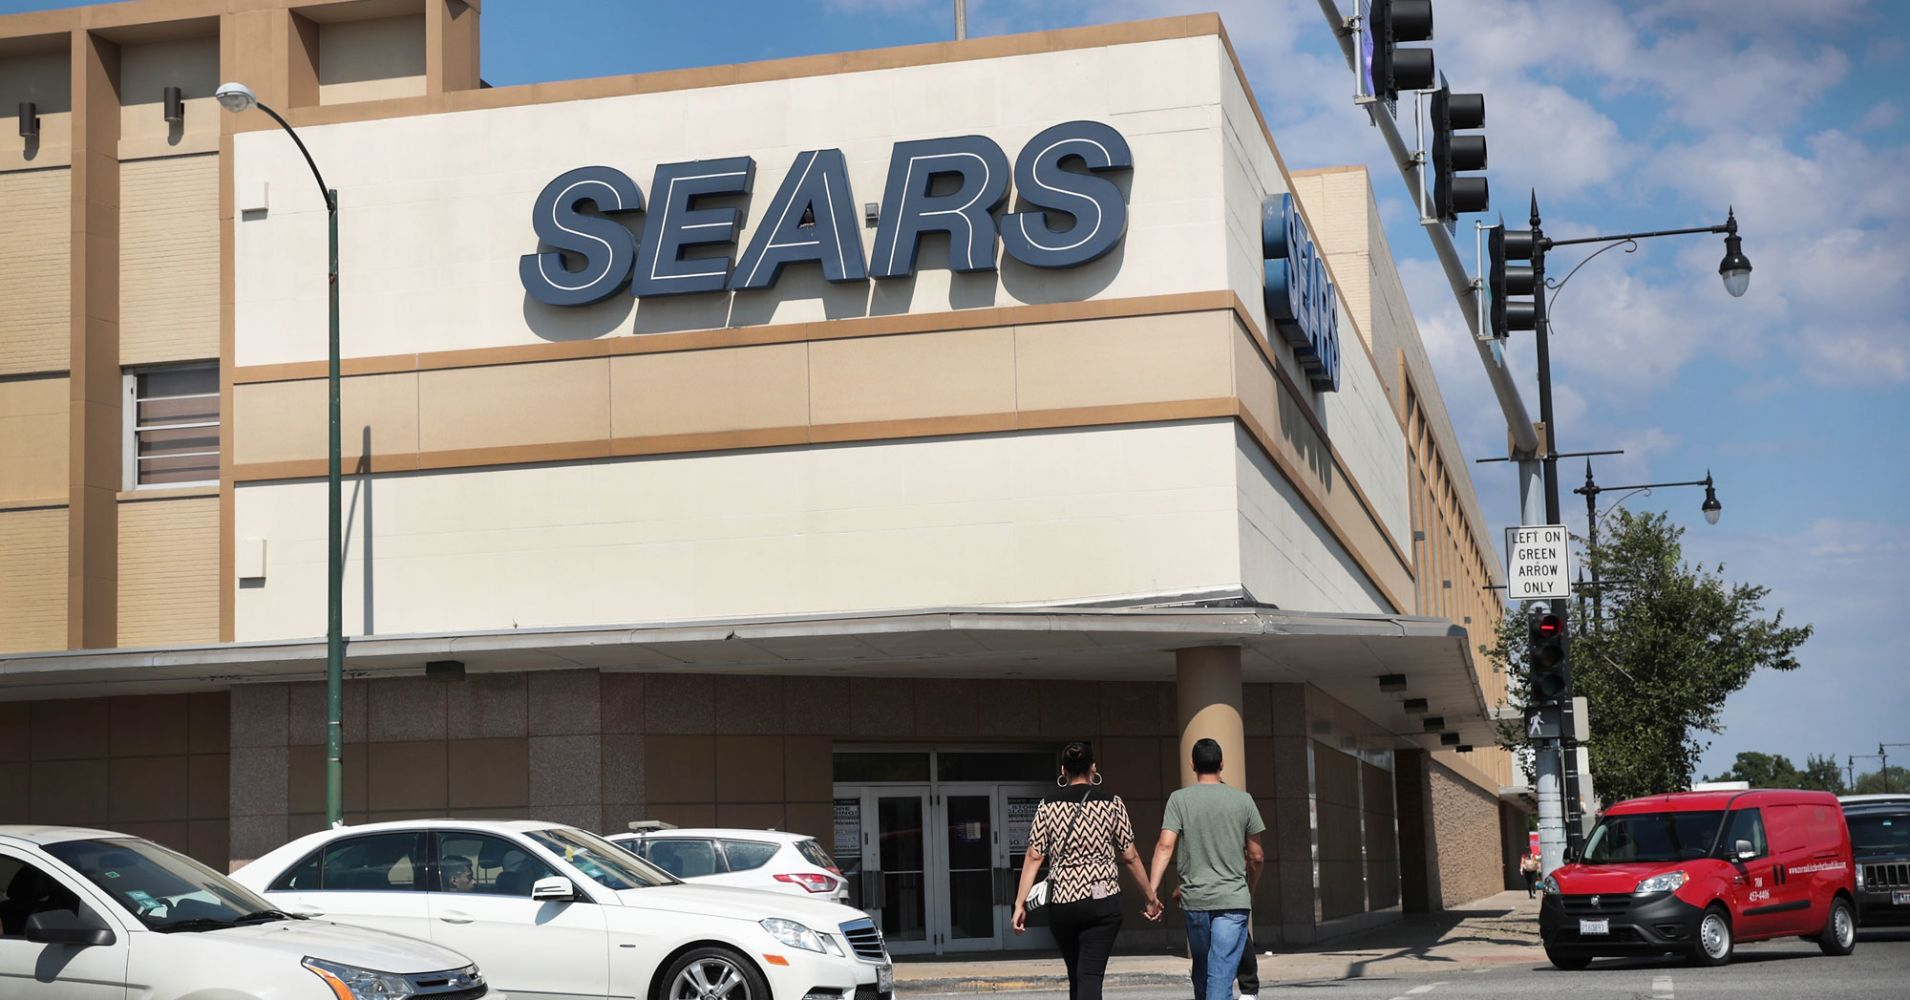 Sears unveils a new logo as it tries to boost its business